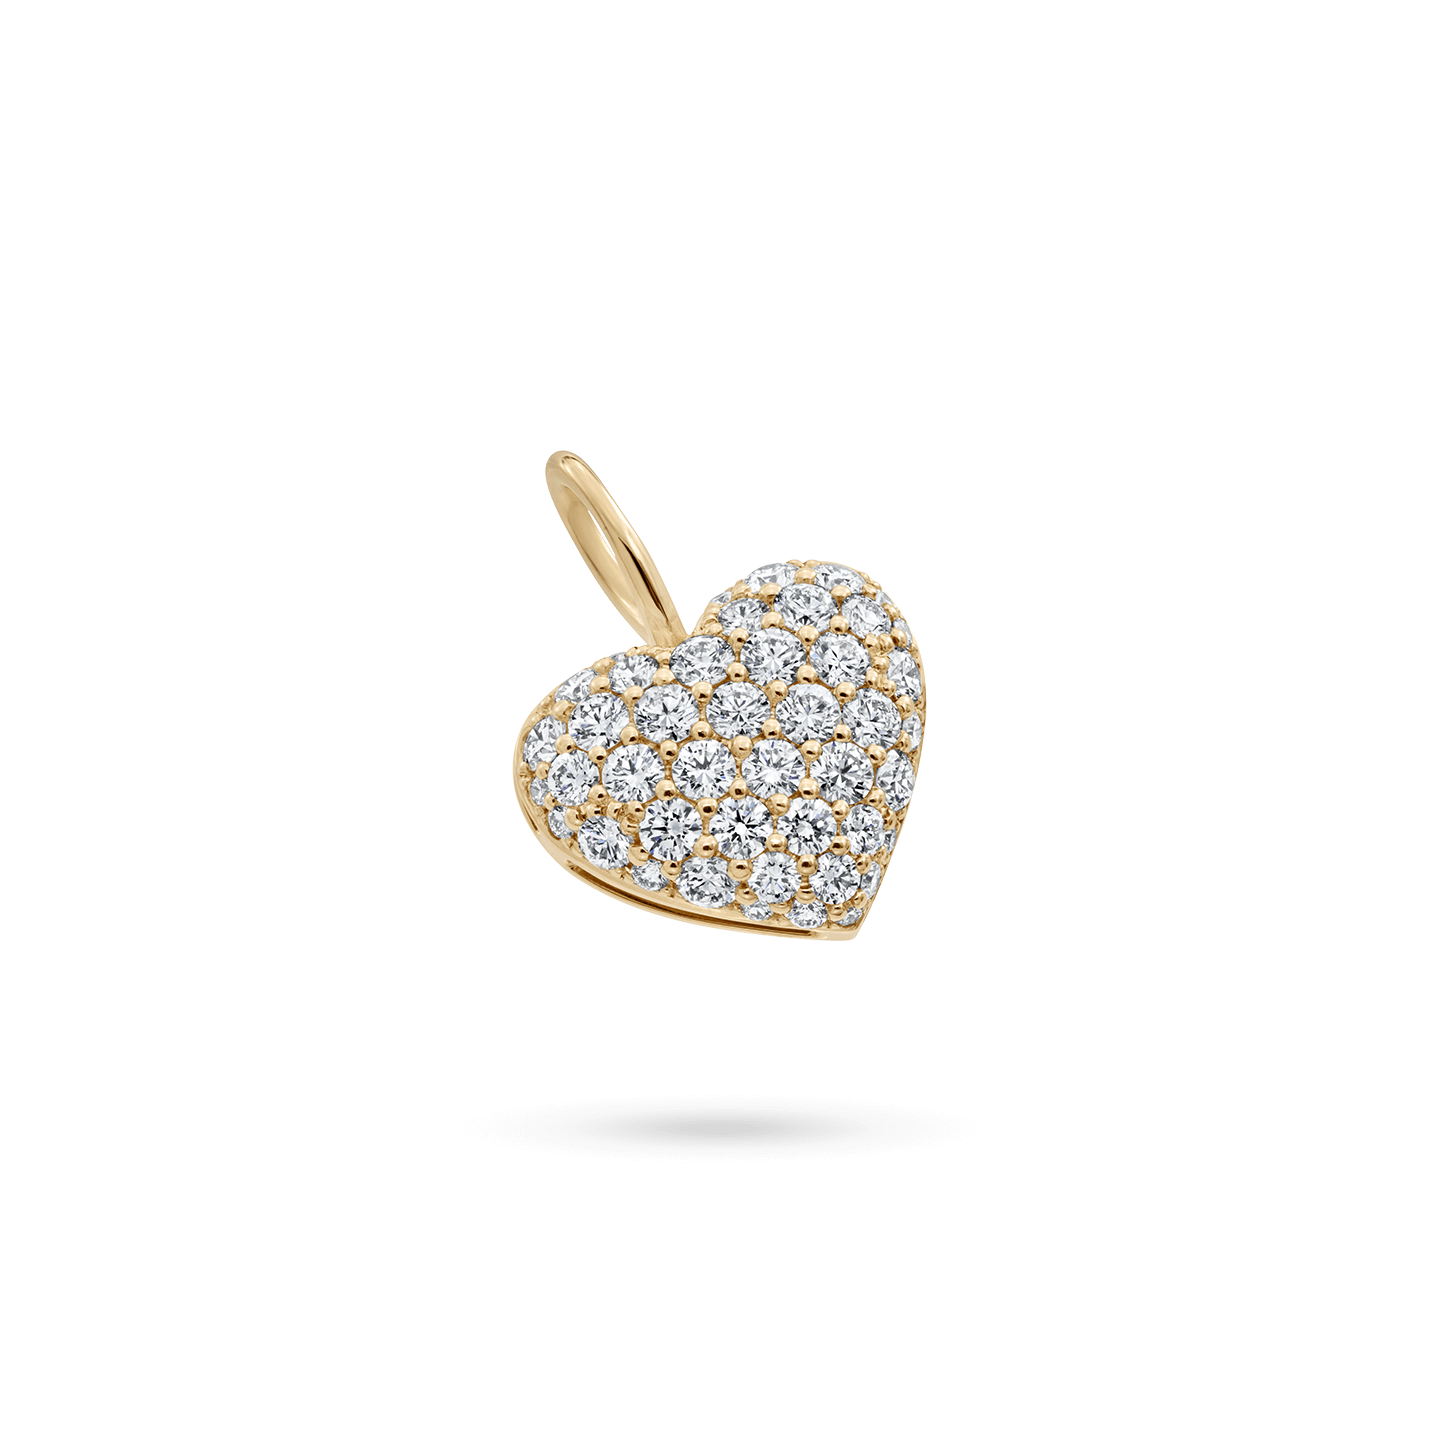 Pavé Heart Charm in Yellow Gold, Product Image 1